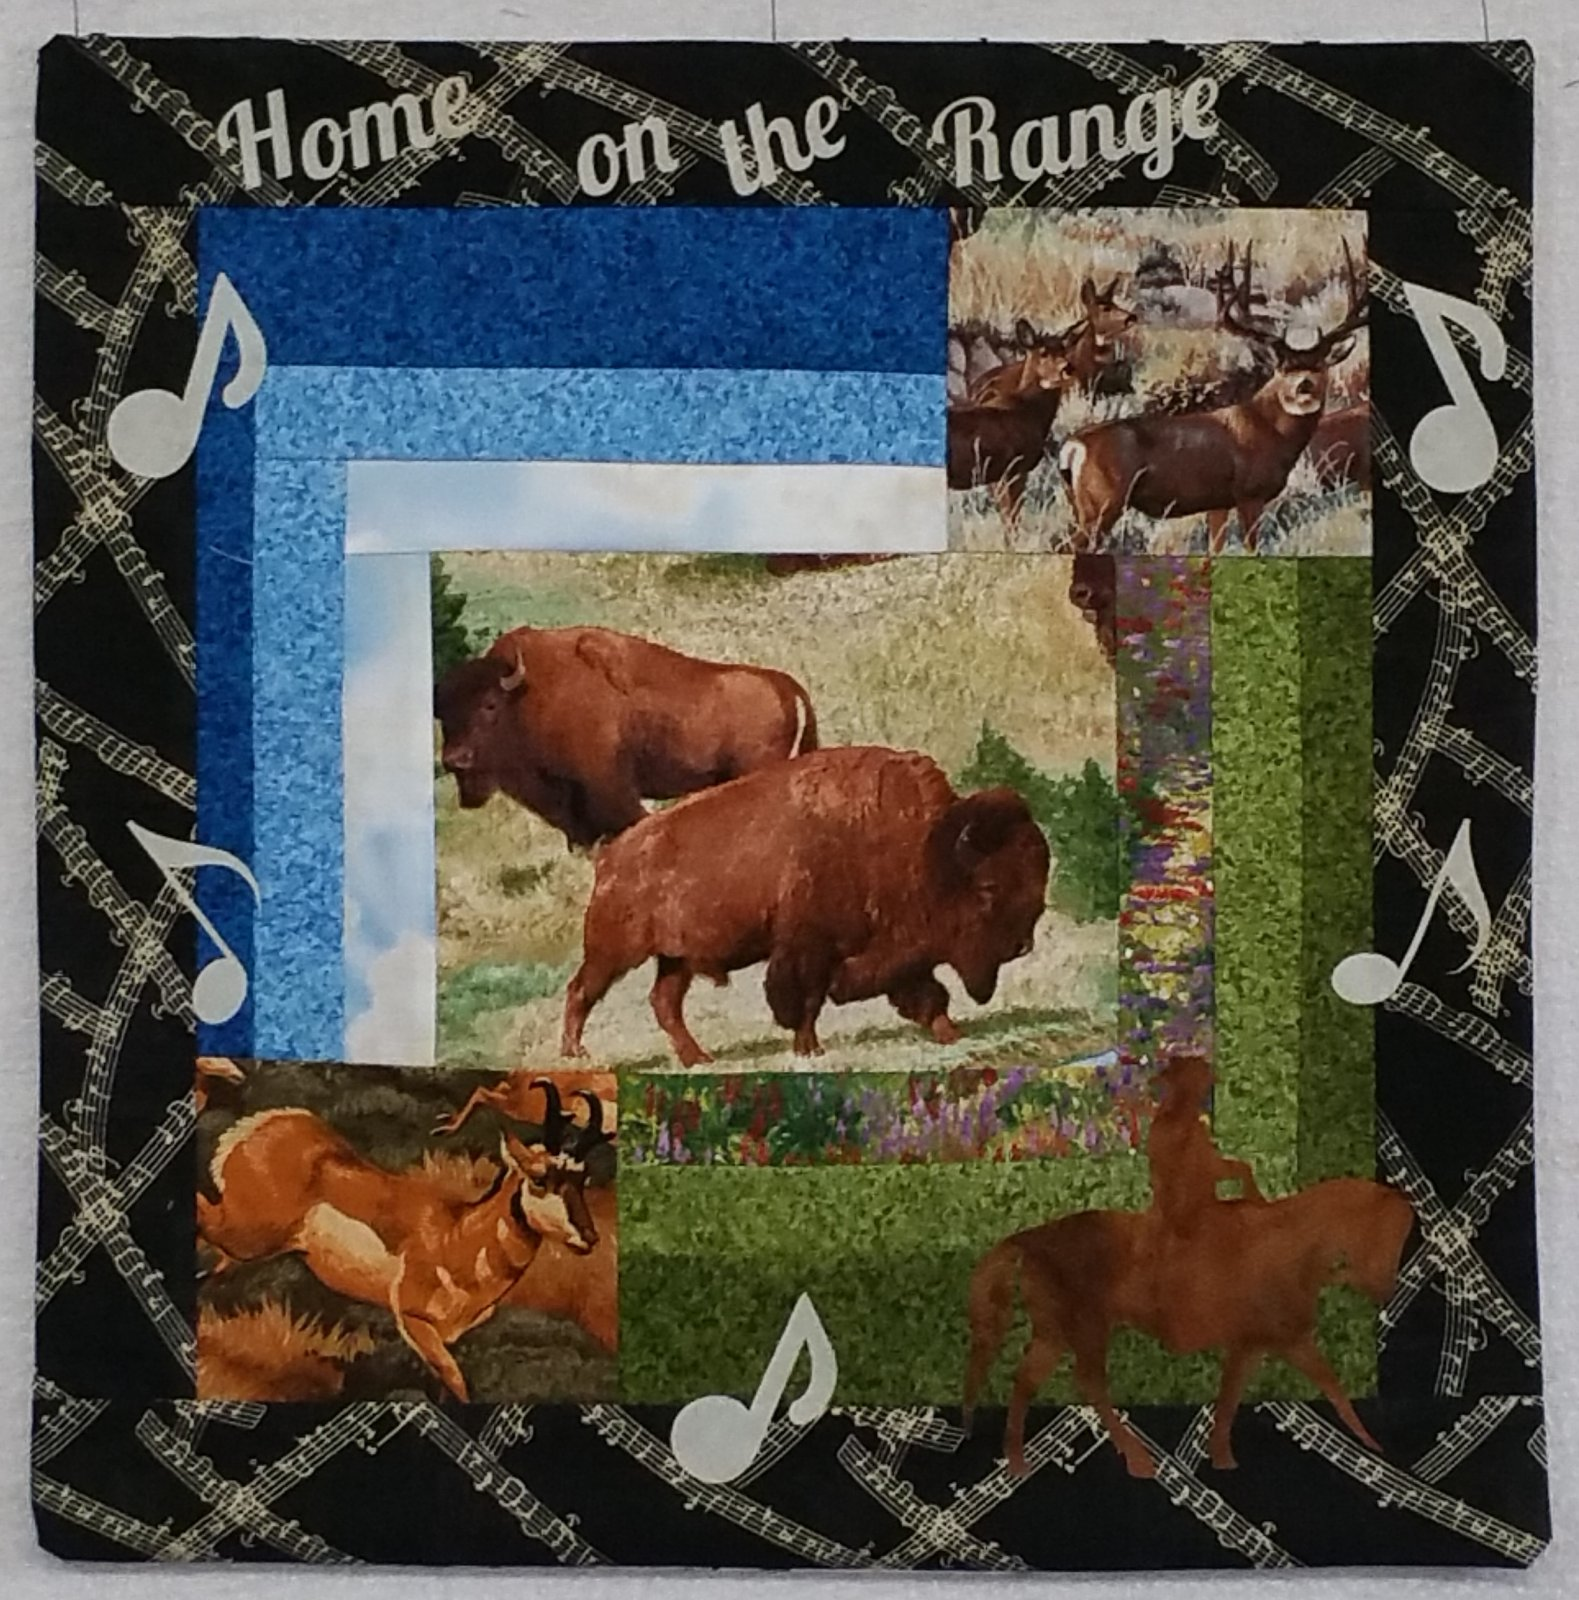 2018 Row by Row 2018 - 18 x 18 Block - Home on the Range - KIT Black